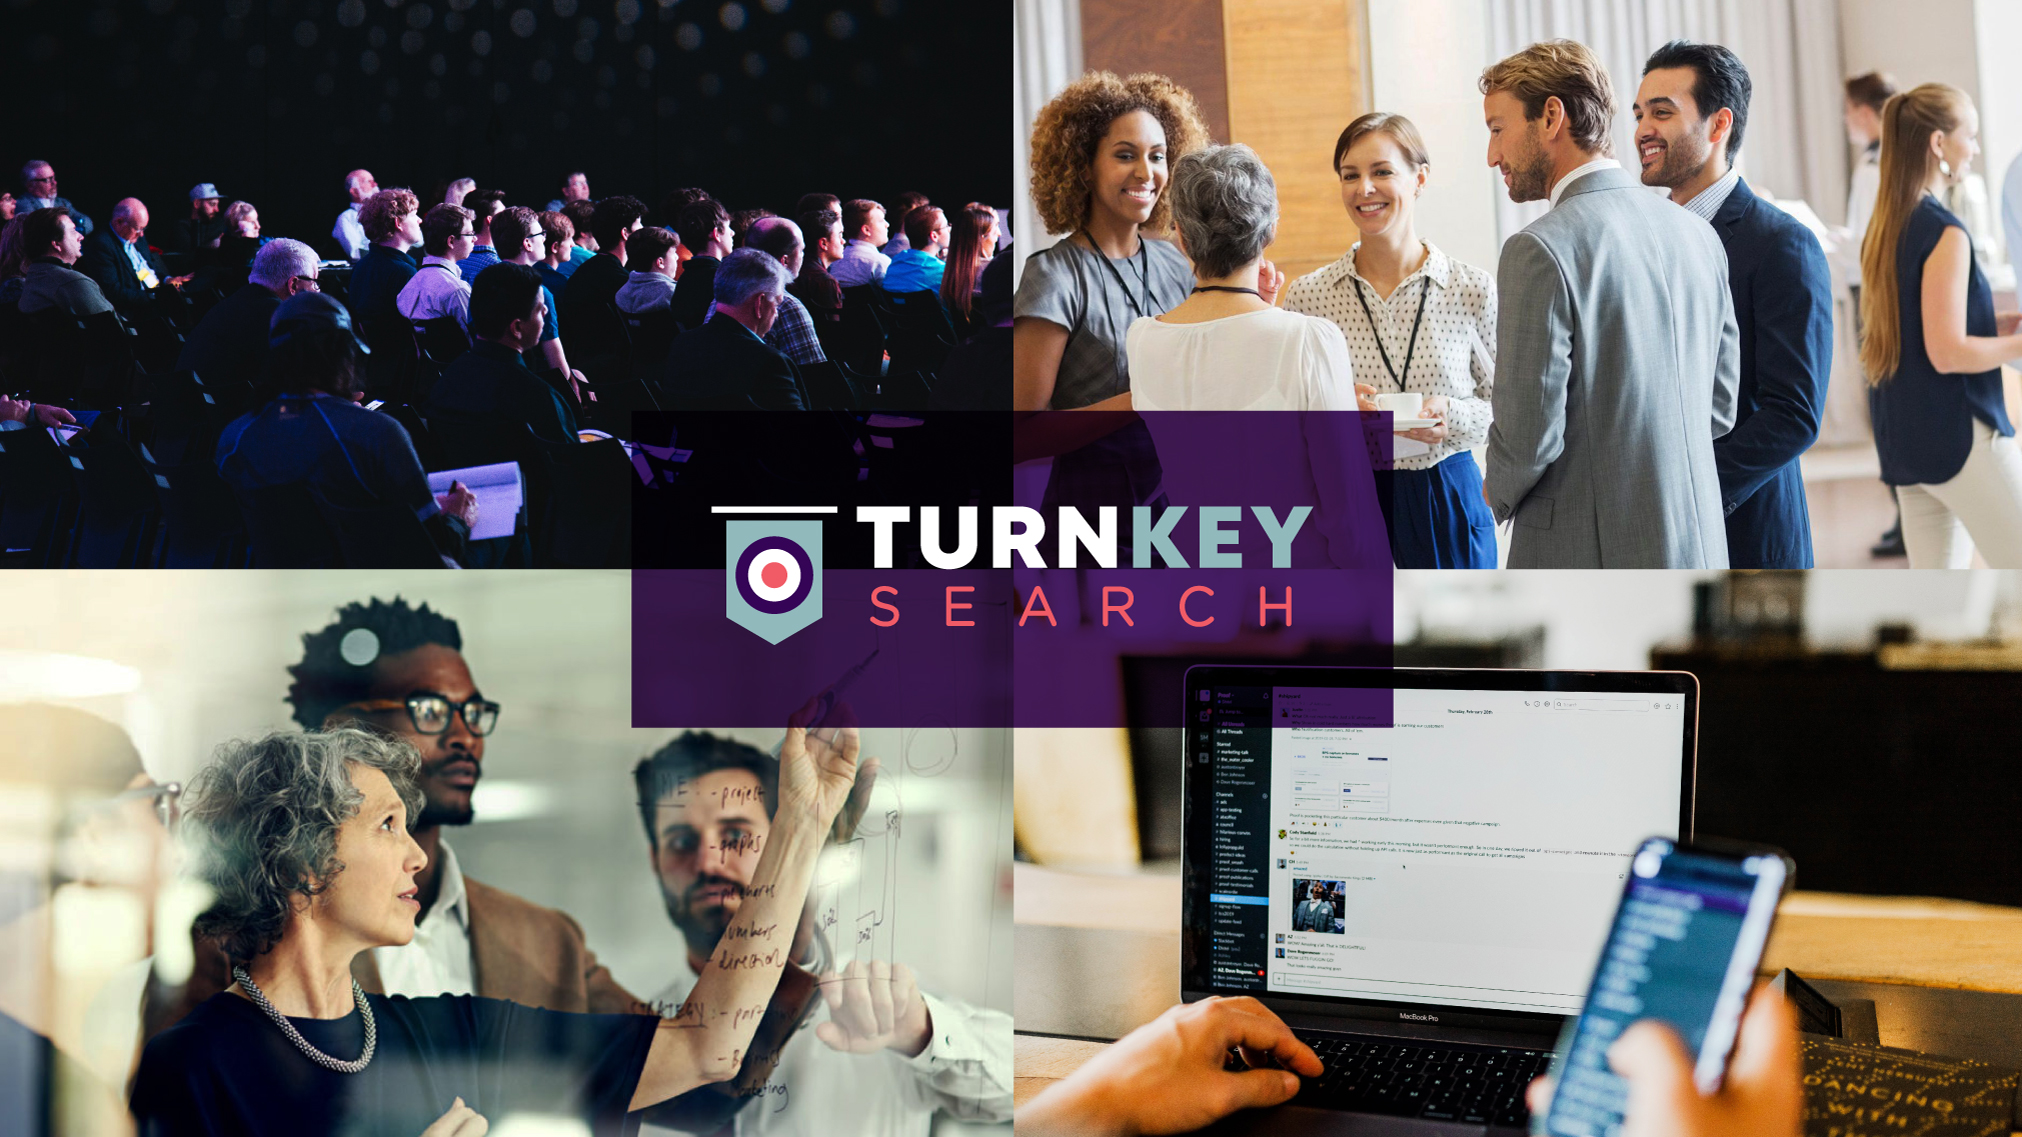 Open-Search-Marketing-Manager-Turnkey Search.jpg